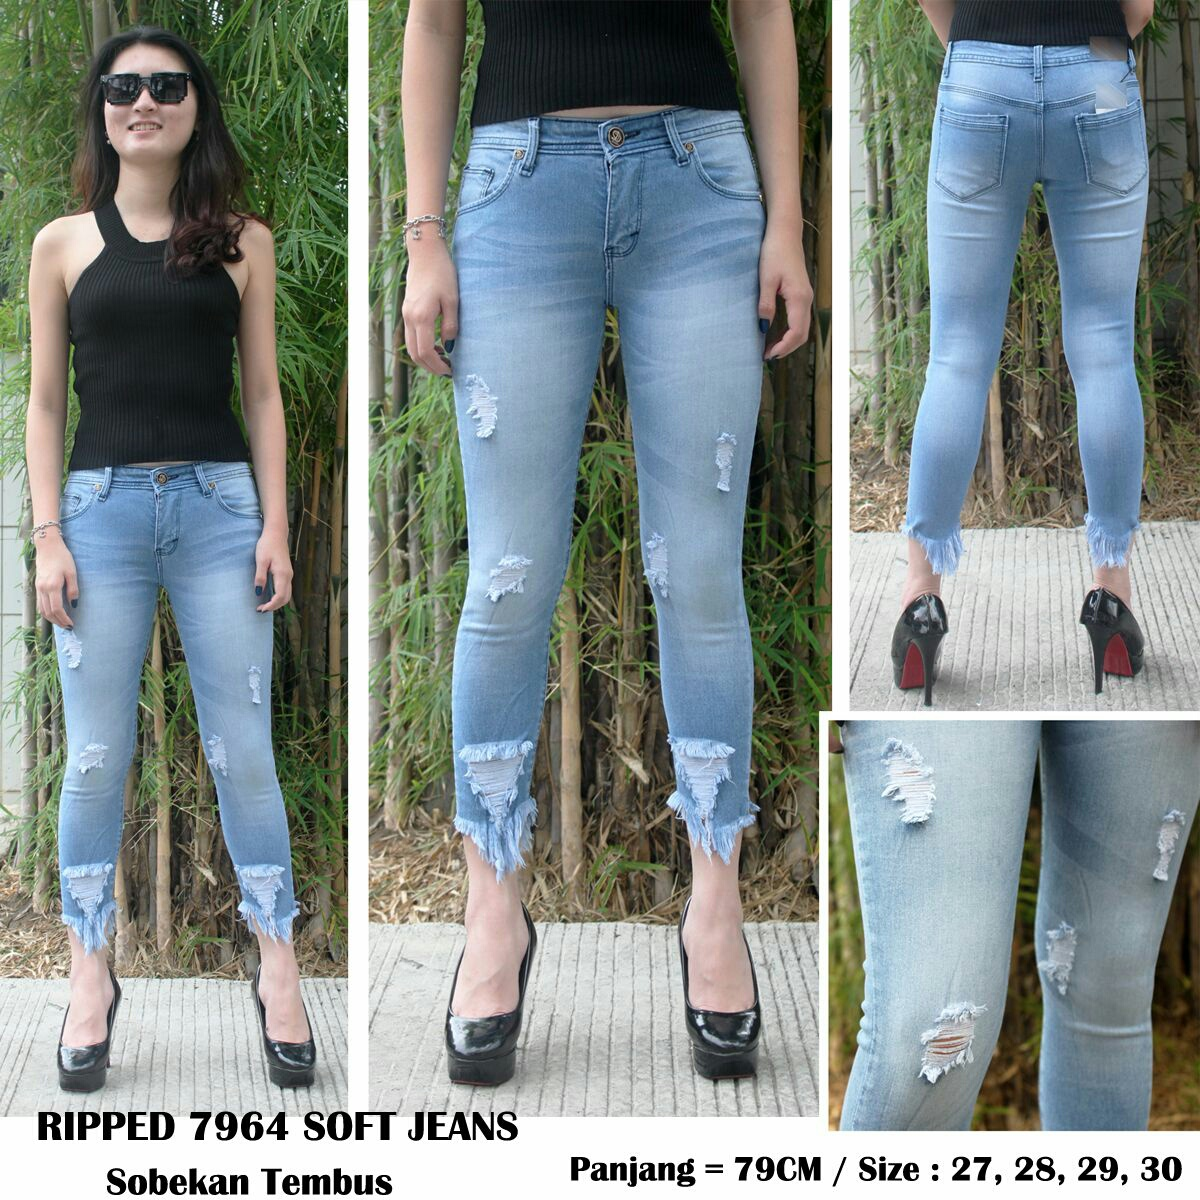 Ripped 7964